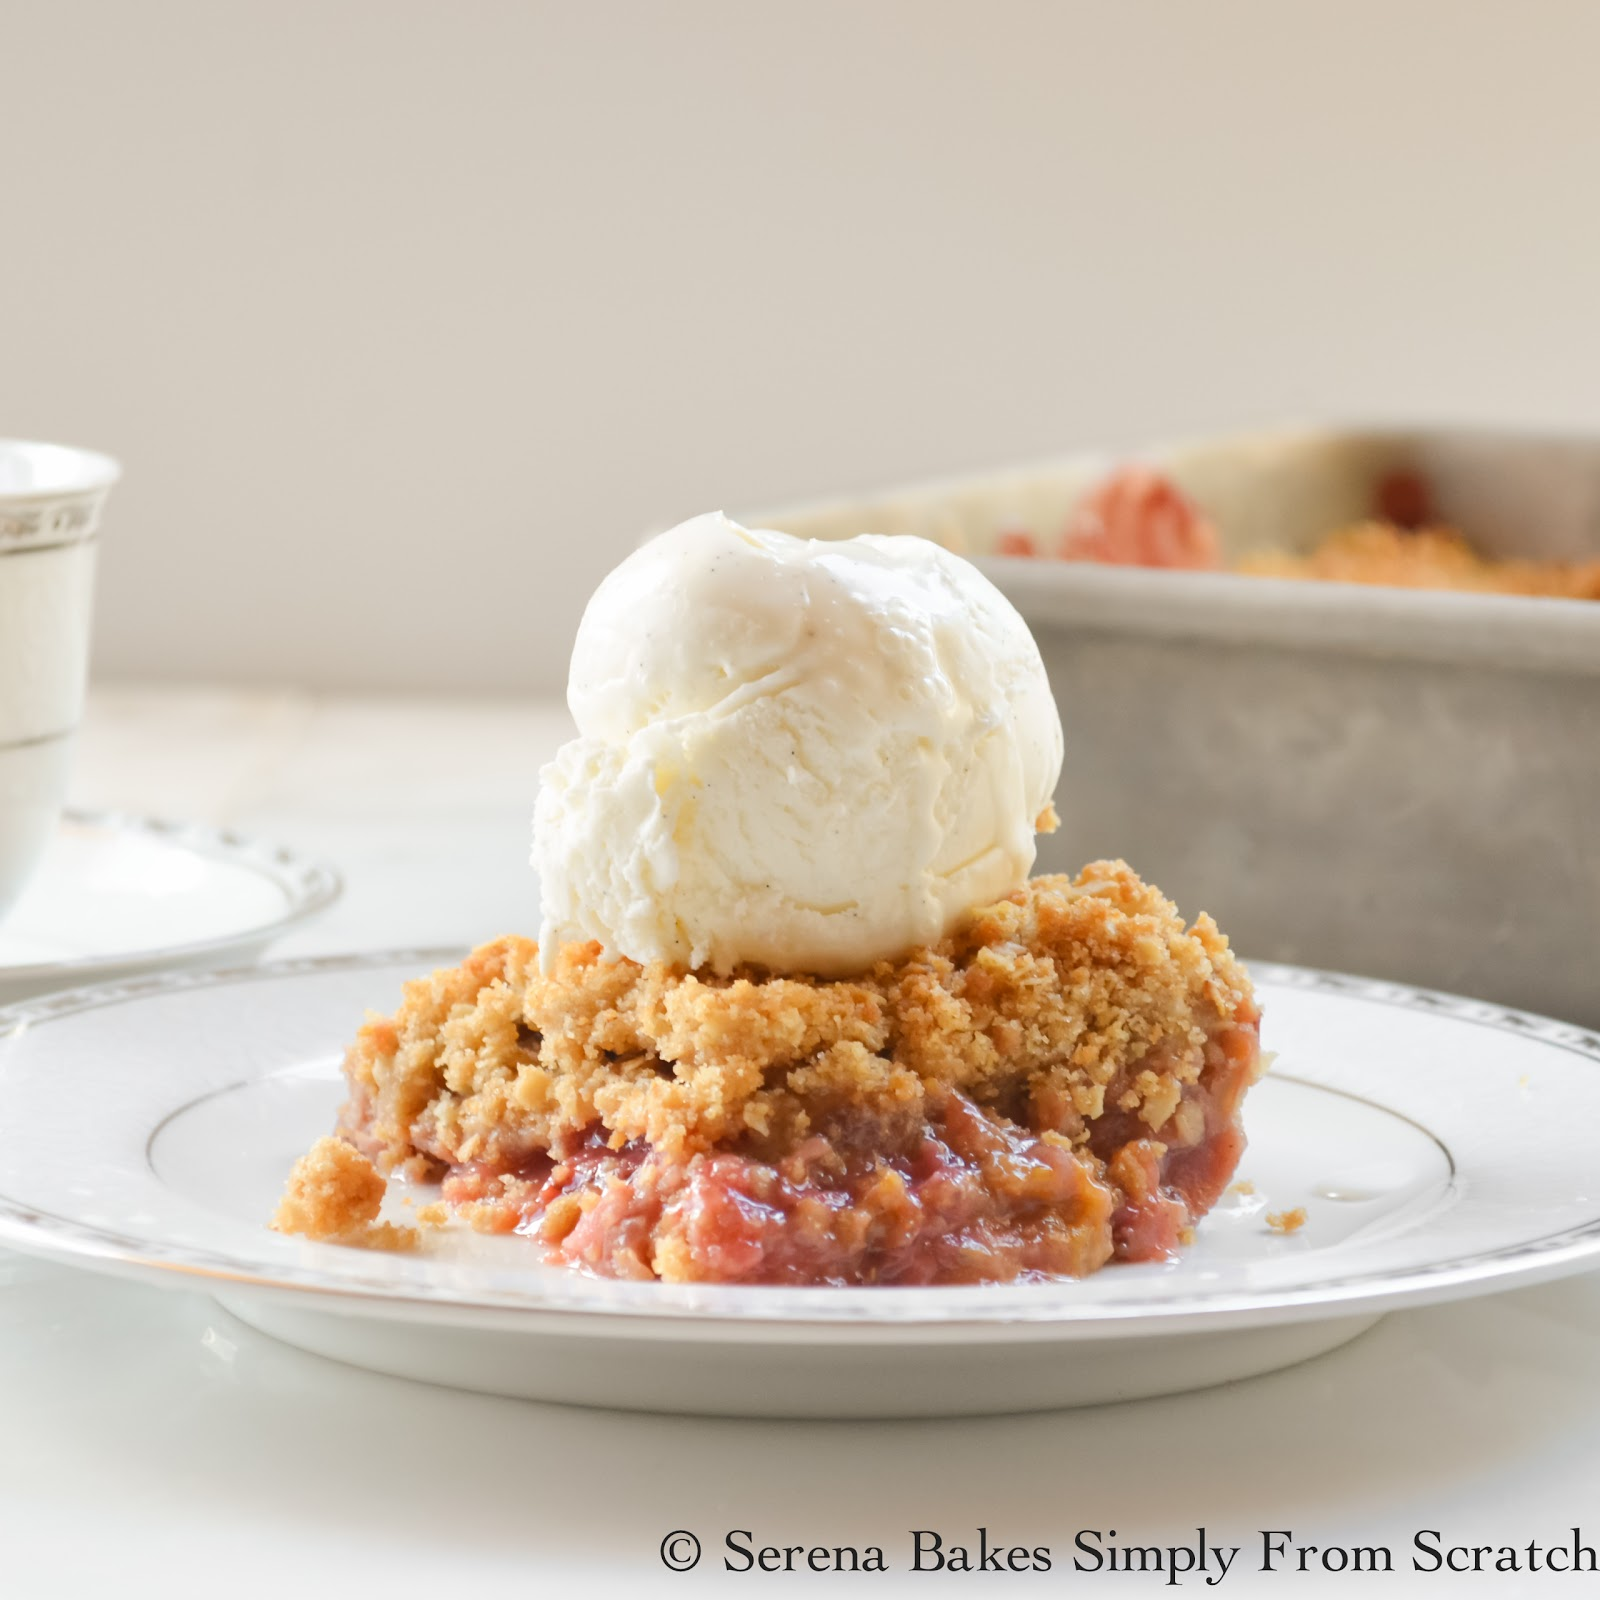 Strawberry Rhubarb Crisp is best served warm with a large scoop of Vanilla Ice Cream.